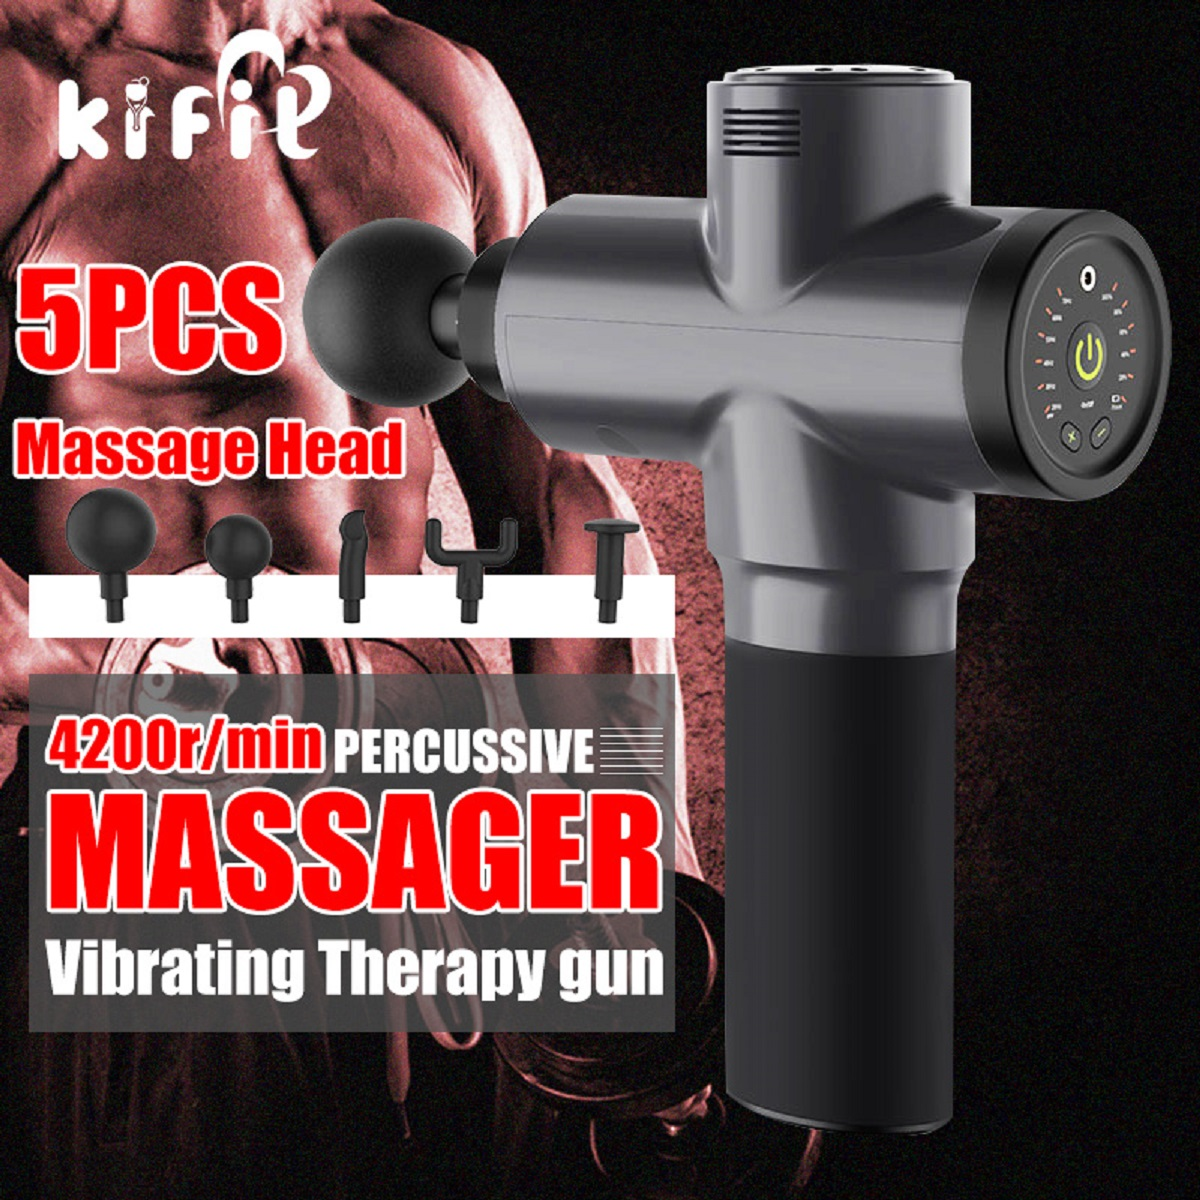 2400mAh Deep Muscle Massager 6 Speed Percussive Vibration